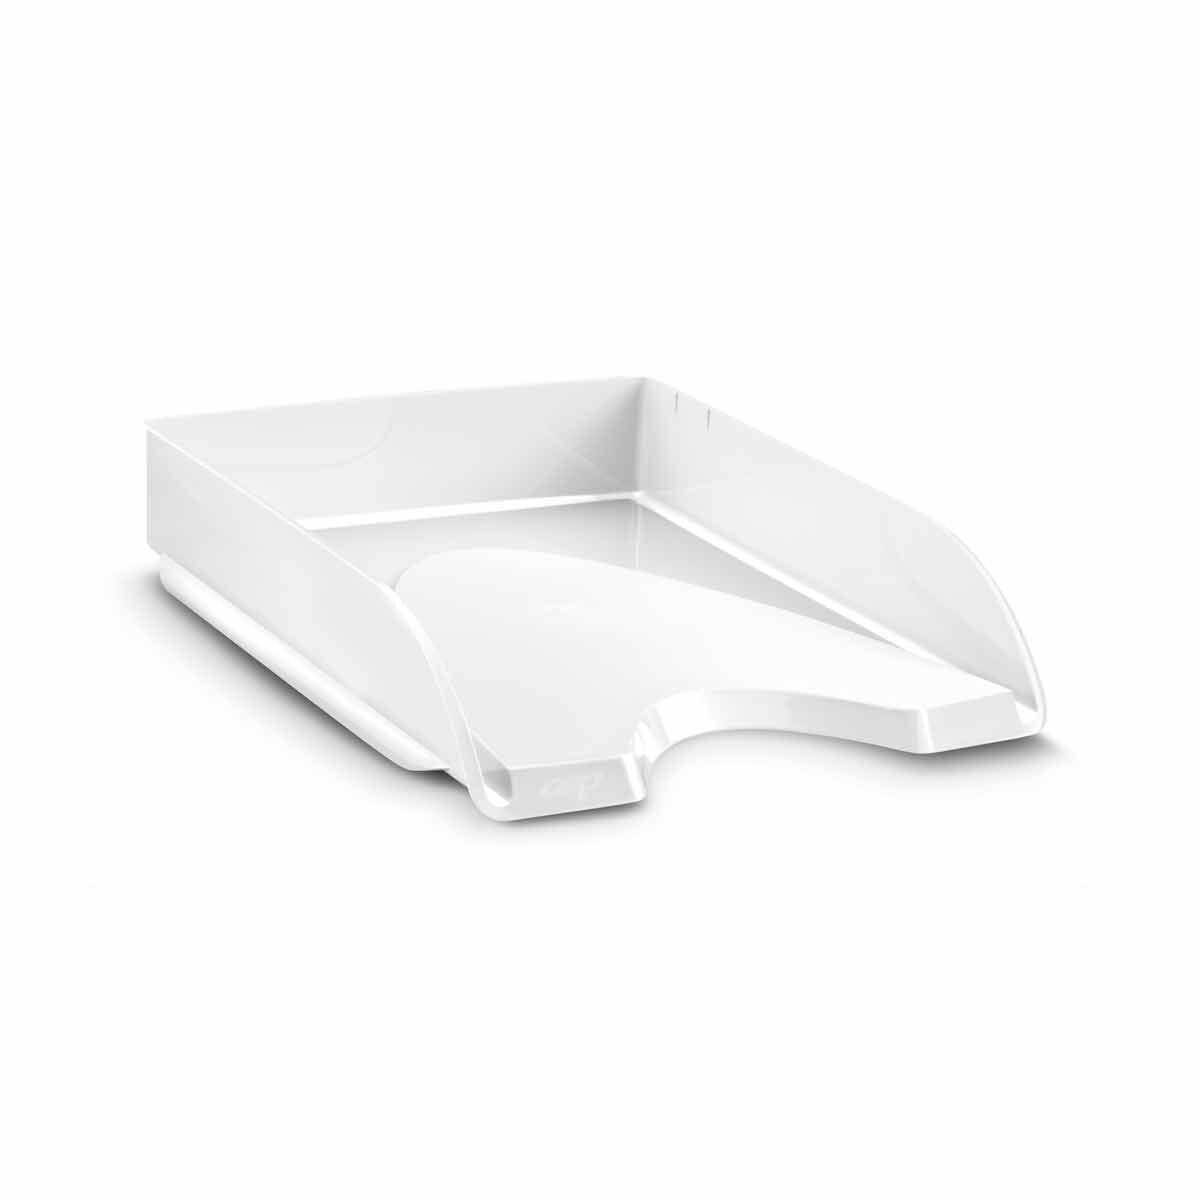 CEP Pro Letter Tray